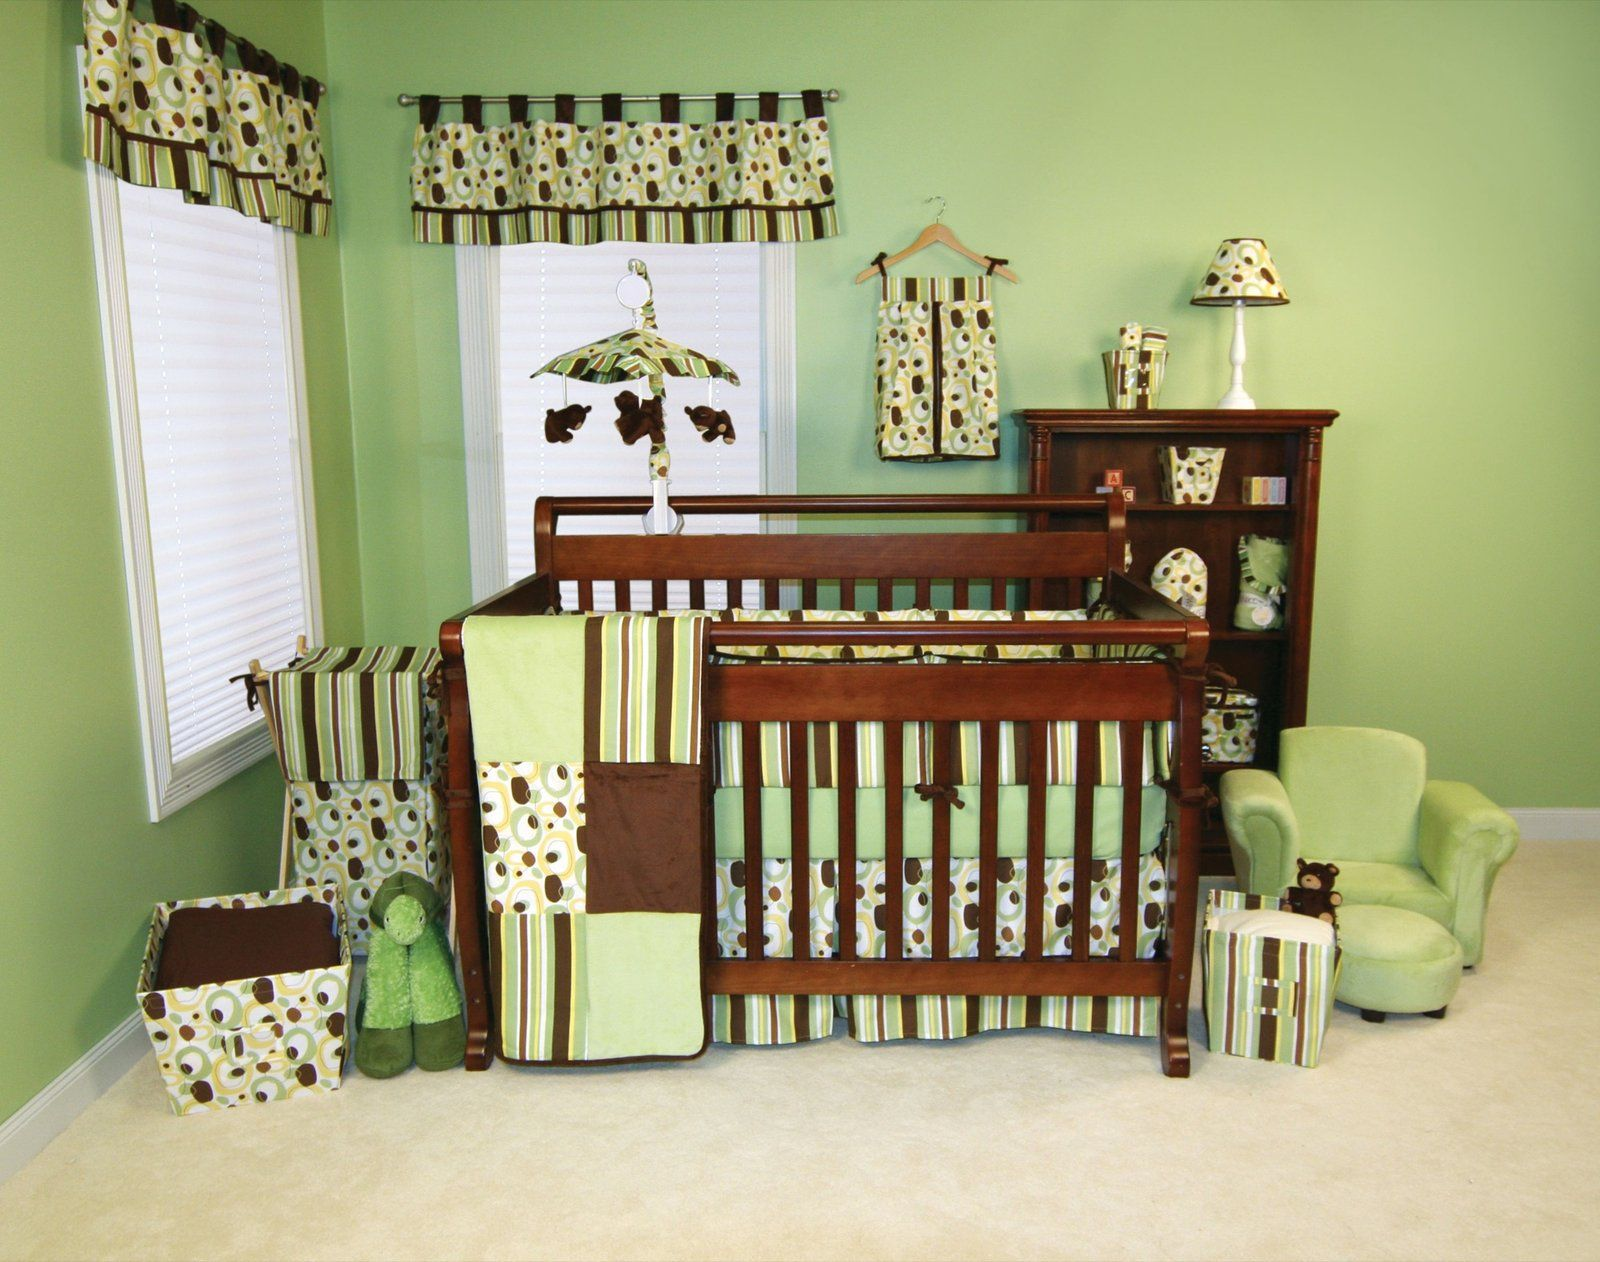 Themes for baby nurserys green theme baby room decor for for Baby room mural ideas